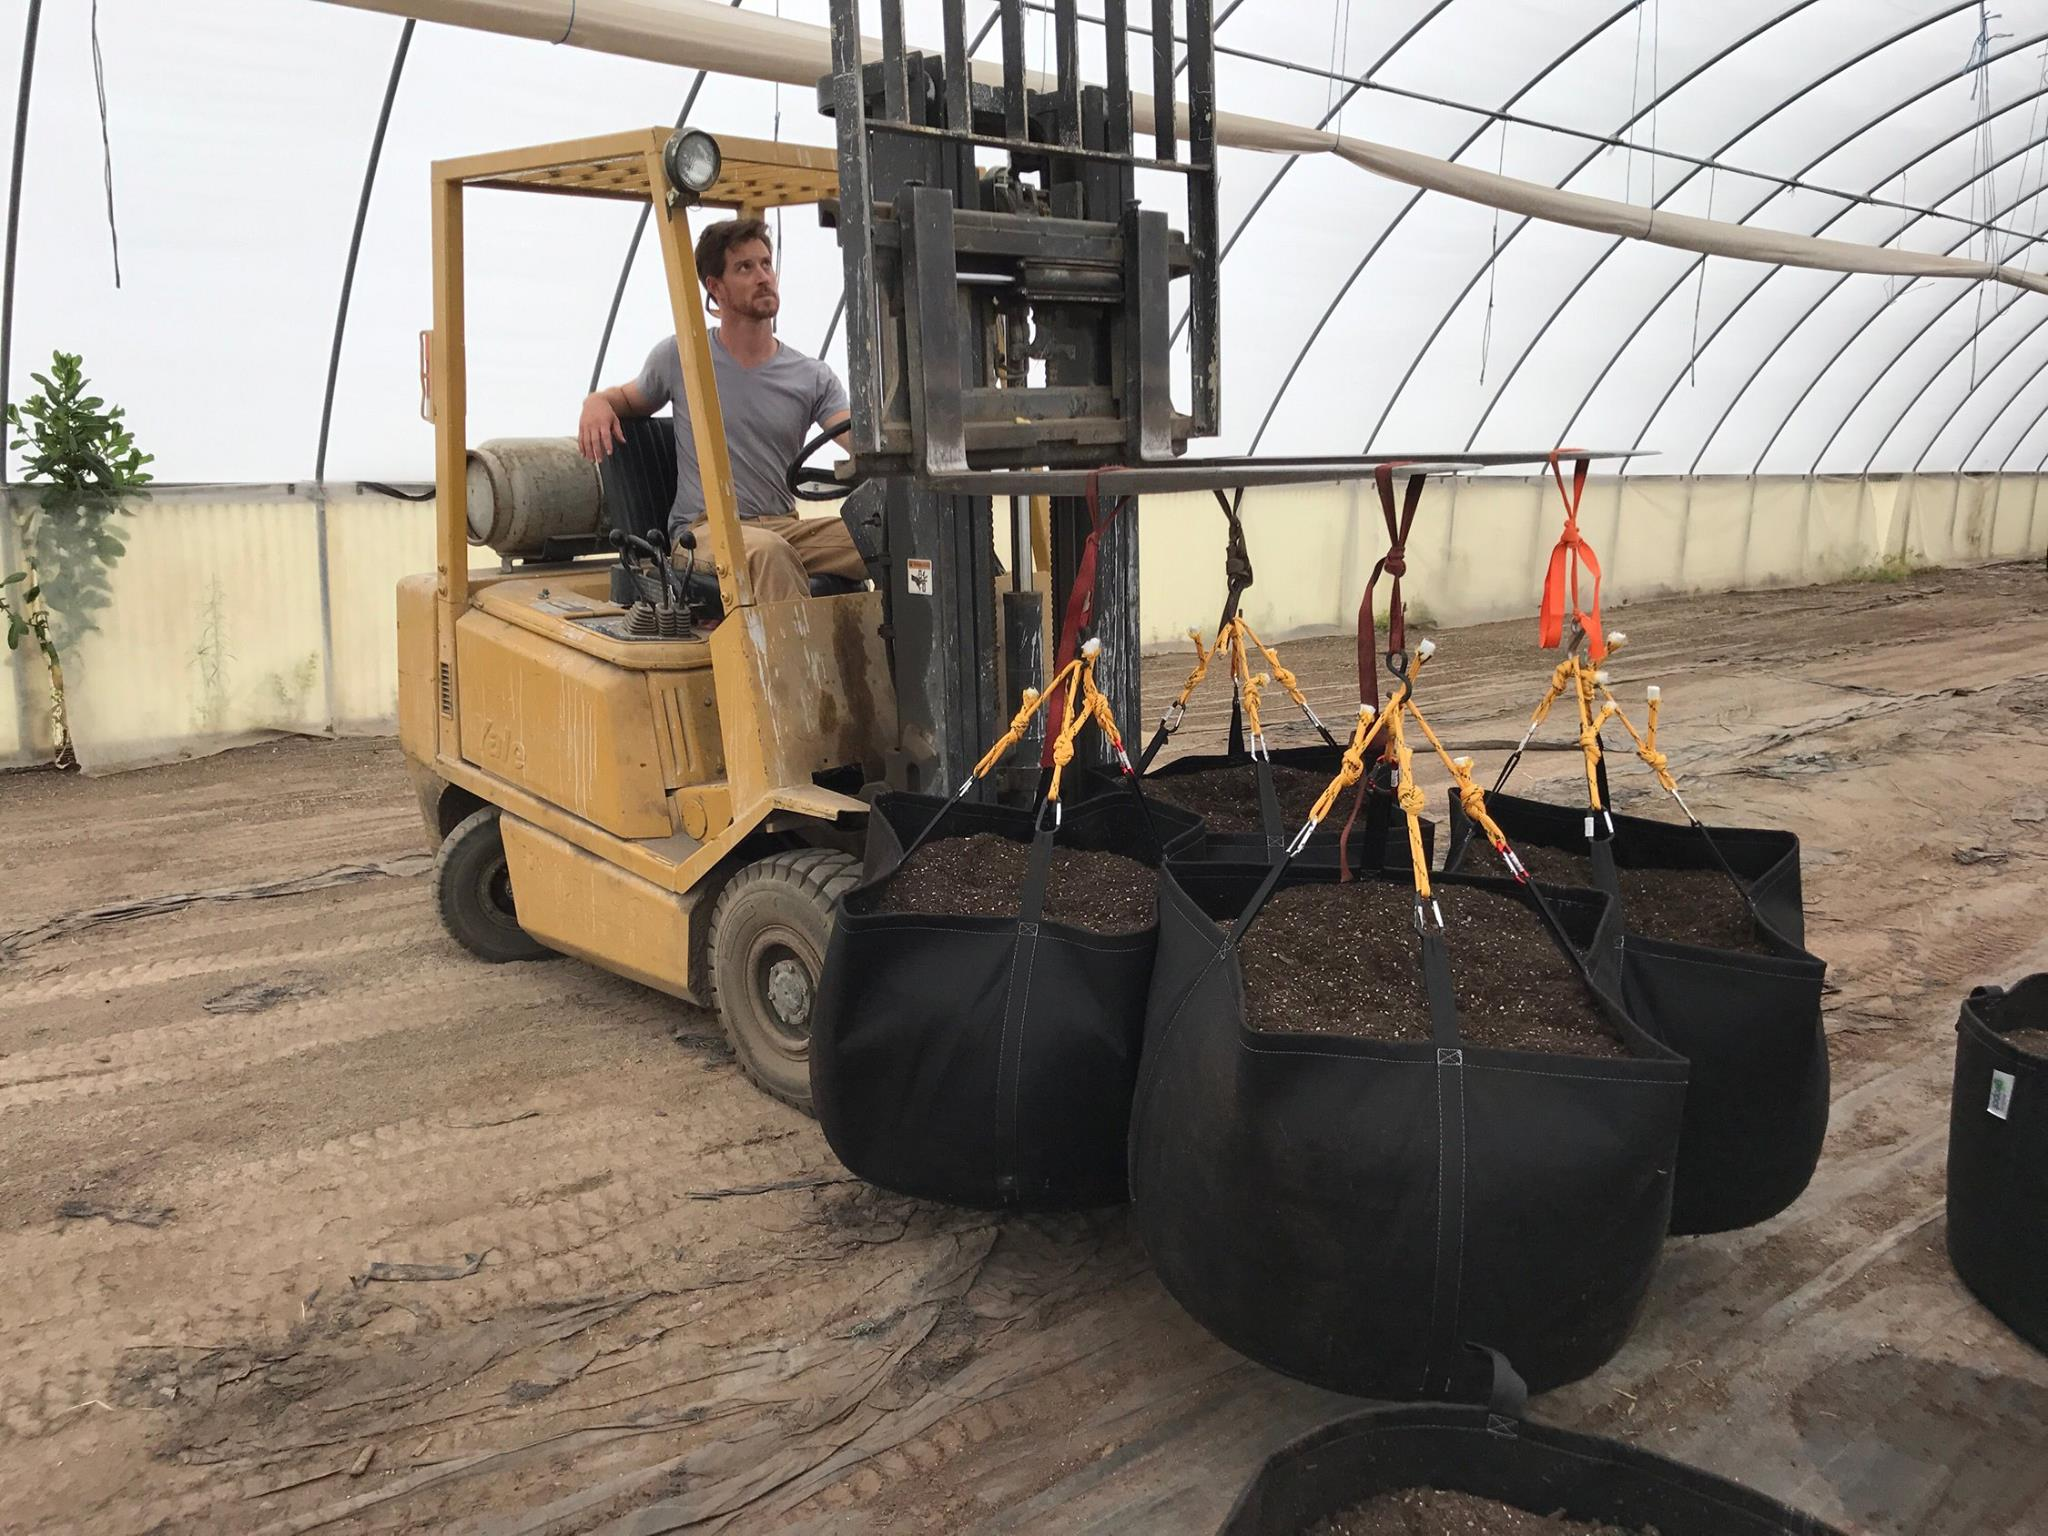 The durable and high quality construction of the Geopot Fabric Gardening Pots are demonstrated by being lifted full of soil with a fork lift.